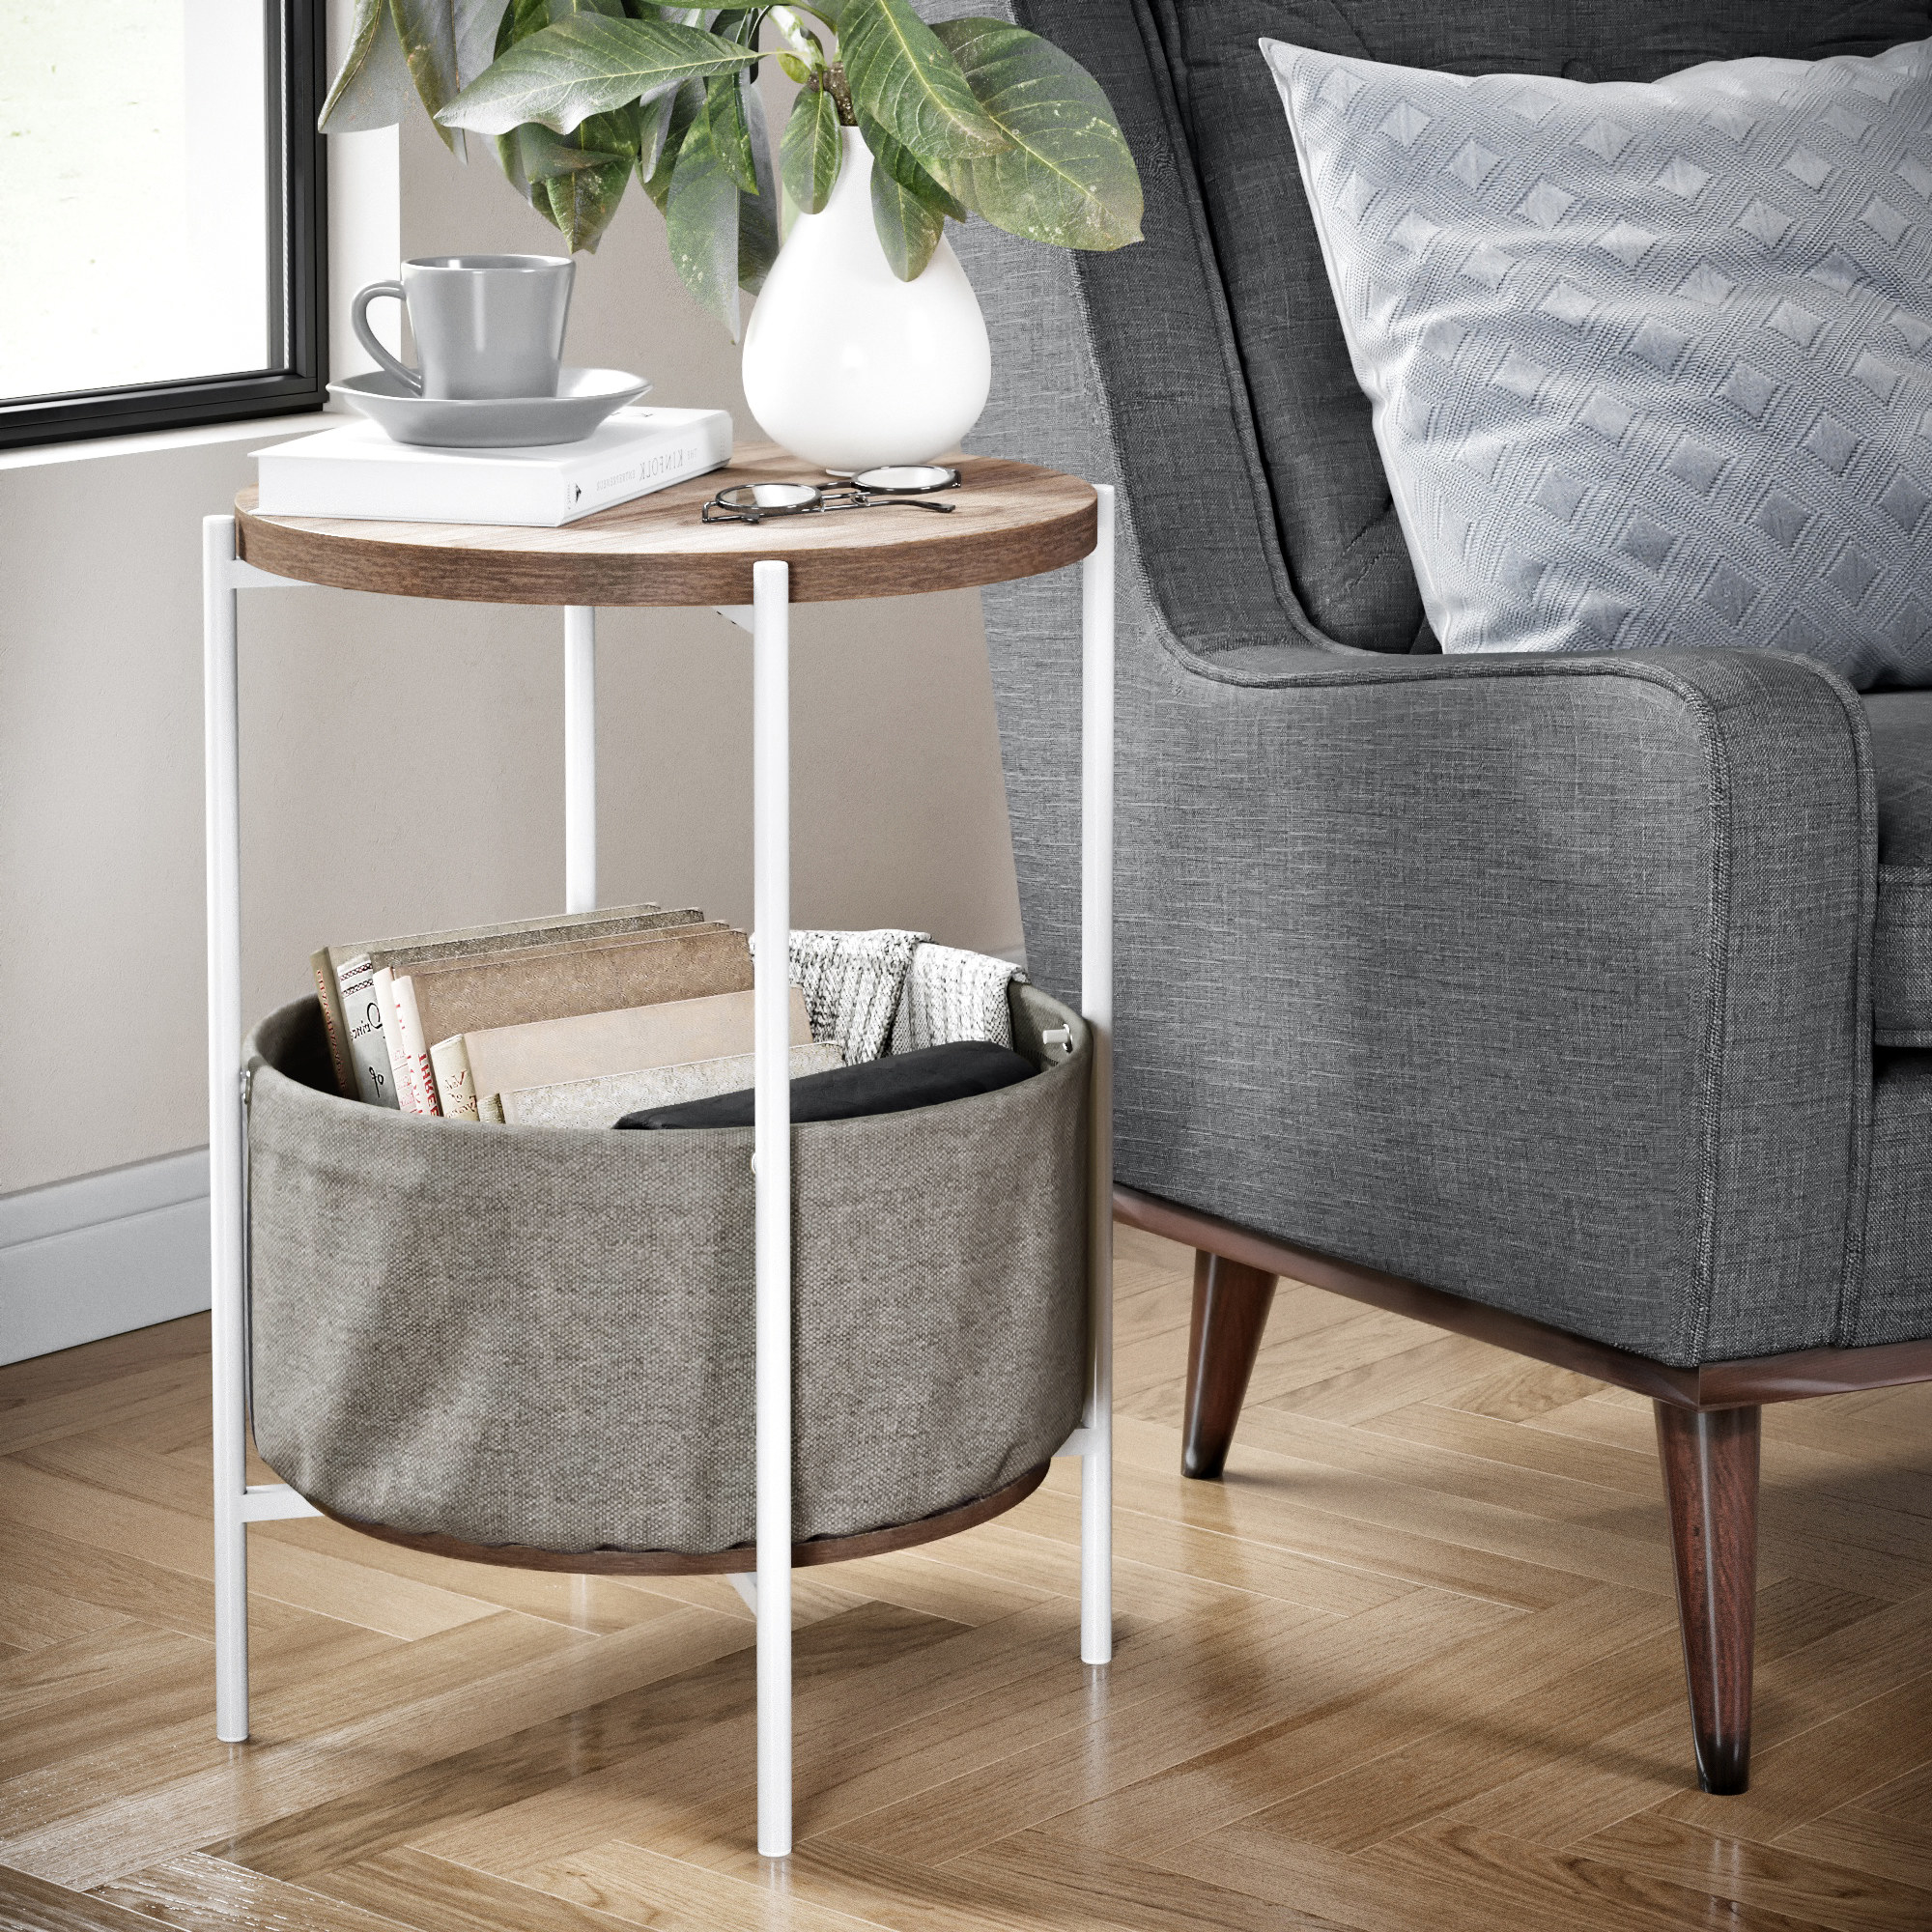 Wooden side table with white legs and fabric storage bin below